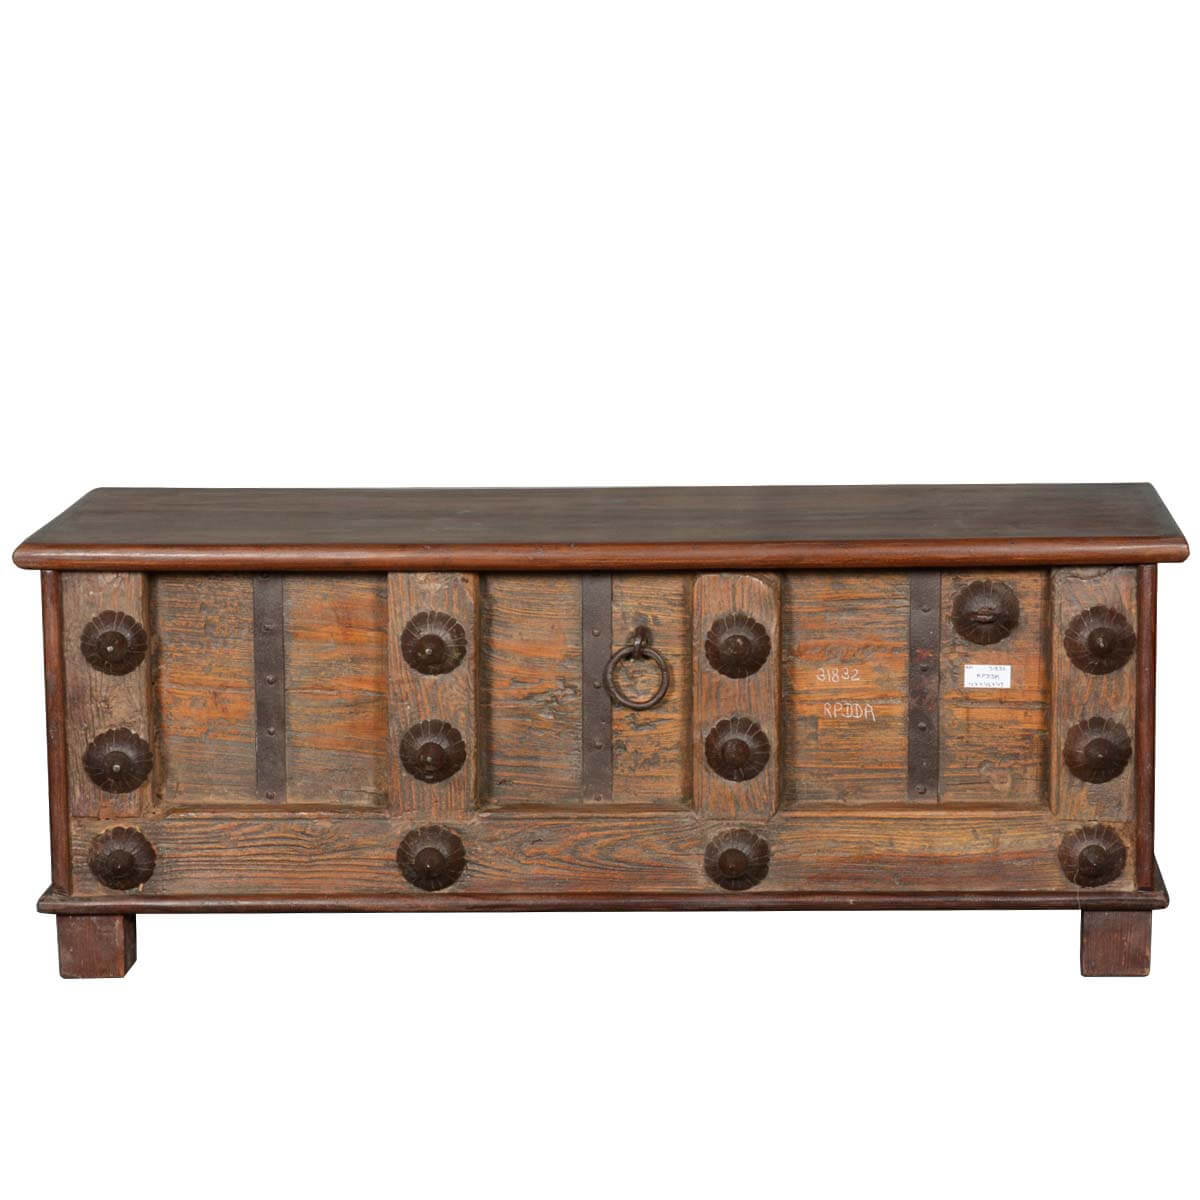 Rustic Pirate Reclaimed Wood Iron Storage Trunk Chest